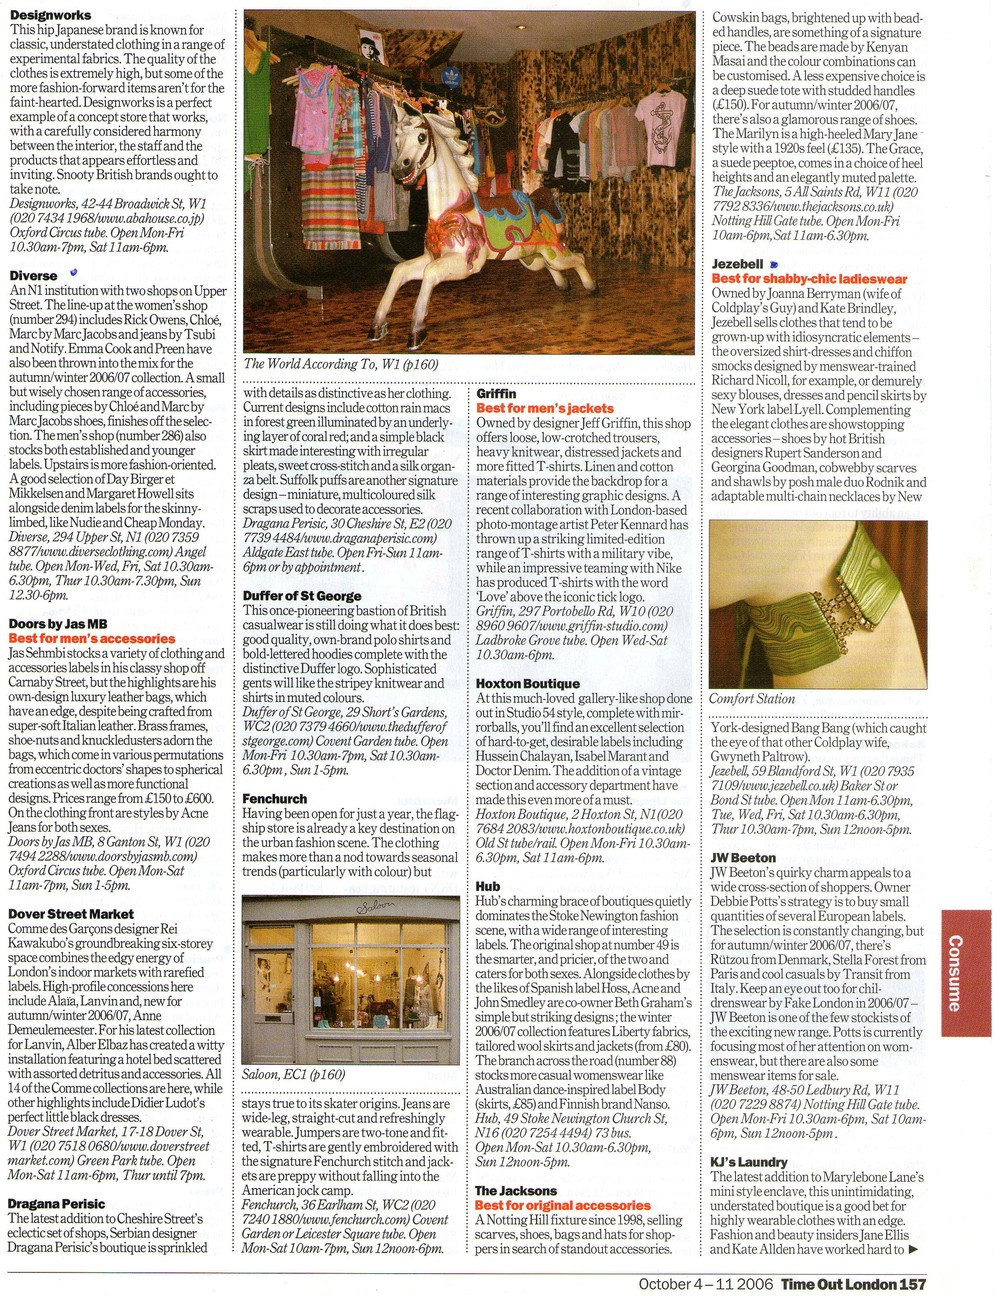 Time out London 4-11.10.06 artical 2of2.jpg